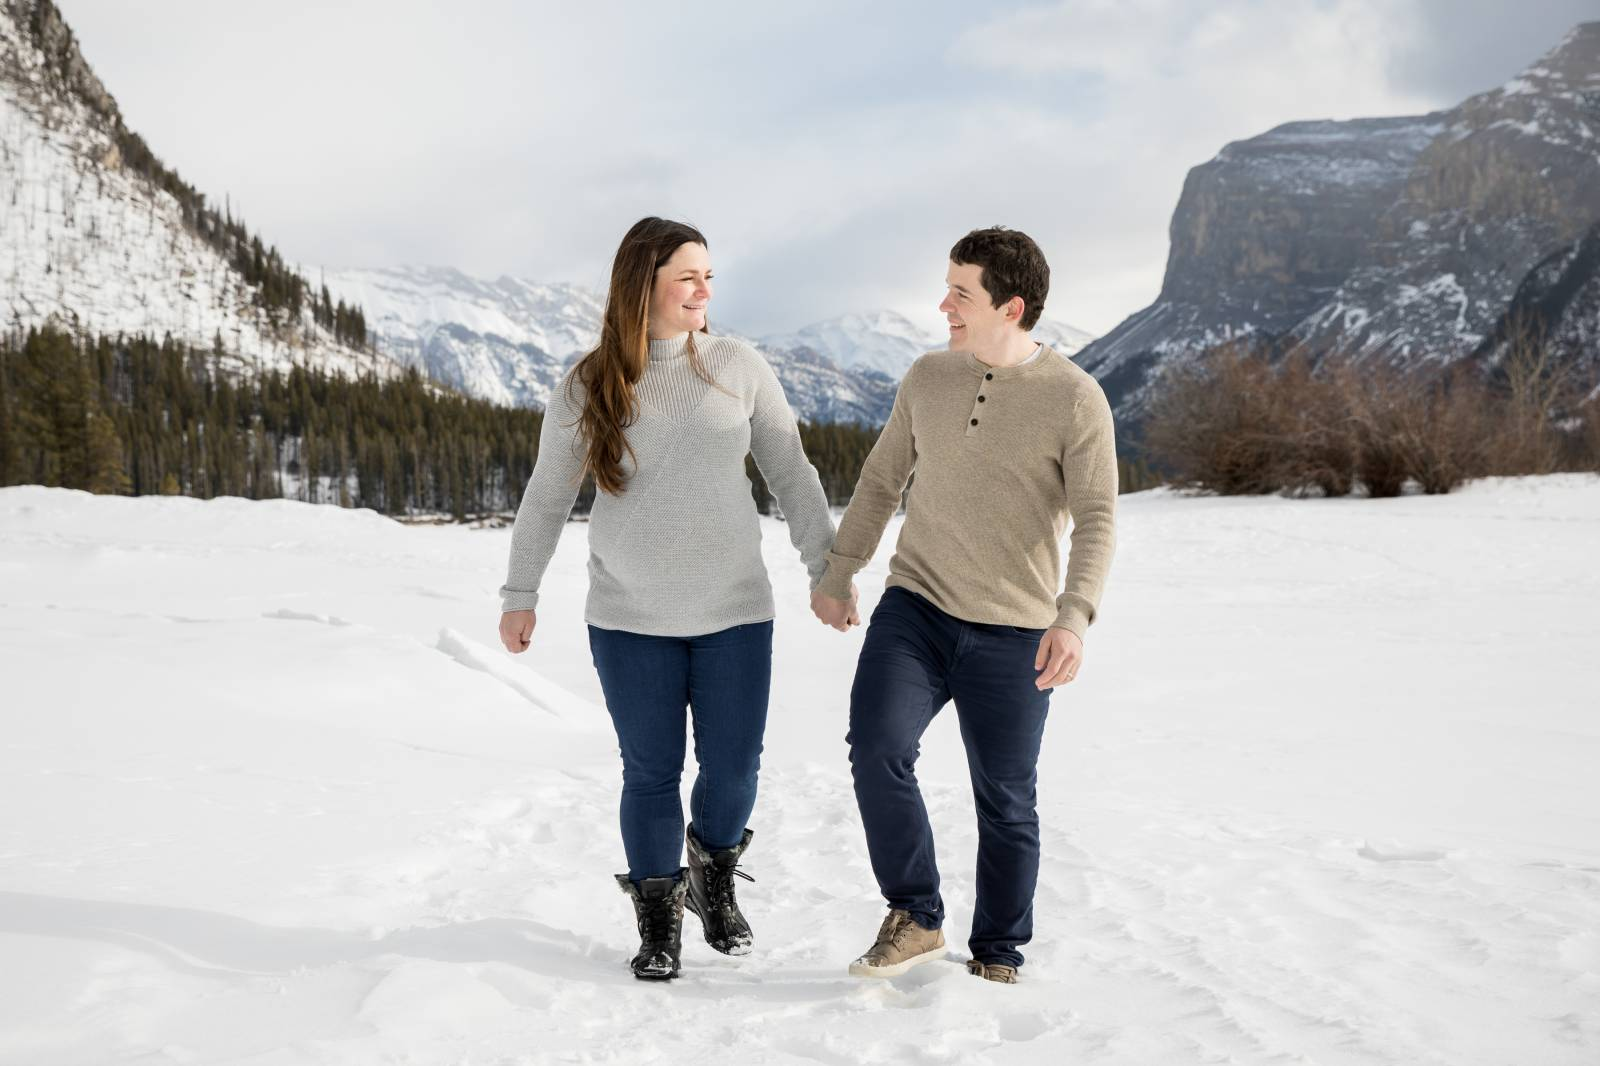 Banff Maternity photo session, Winter Maternity Photos, Banff Family Photographer, Banff Couple Port